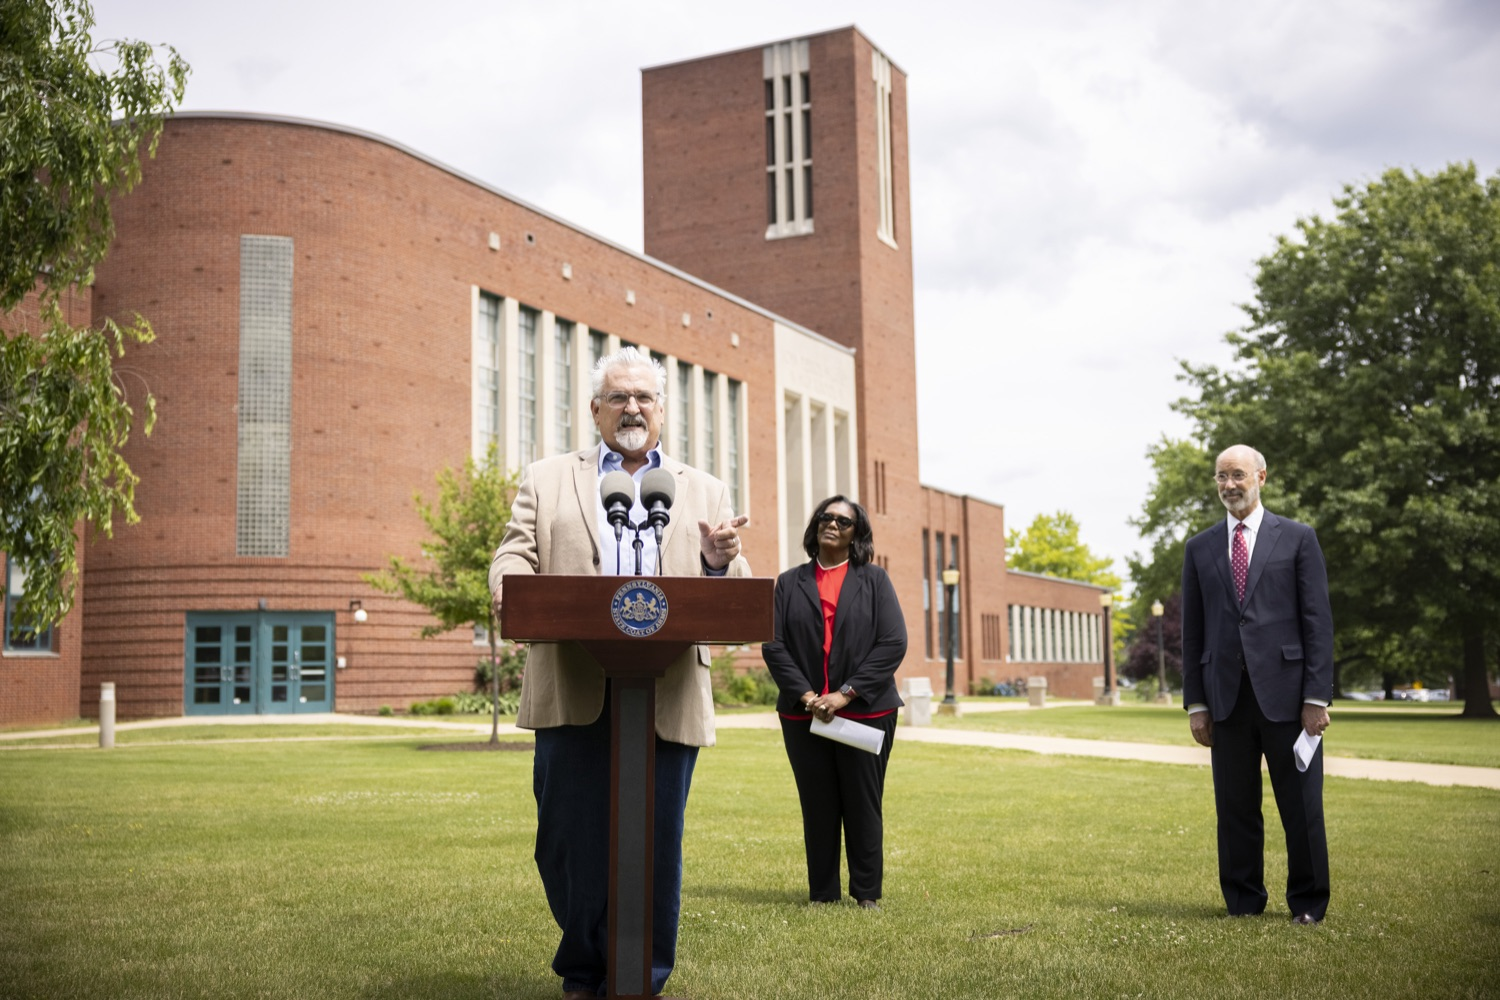 """<a href=""""https://filesource.wostreaming.net/commonwealthofpa/photo/18796_gov_charterSchool_dz_005.jpg"""" target=""""_blank"""">⇣Download Photo<br></a>Representative Mike Sturla speaking with the press.  With overwhelming support among school districts for his charter school accountability plan, Governor Tom Wolf visited J.P. McCaskey High School in Lancaster today to discuss his bipartisan proposal that saves an estimated $395 million a year. Lancaster, PA  June 01, 2021"""